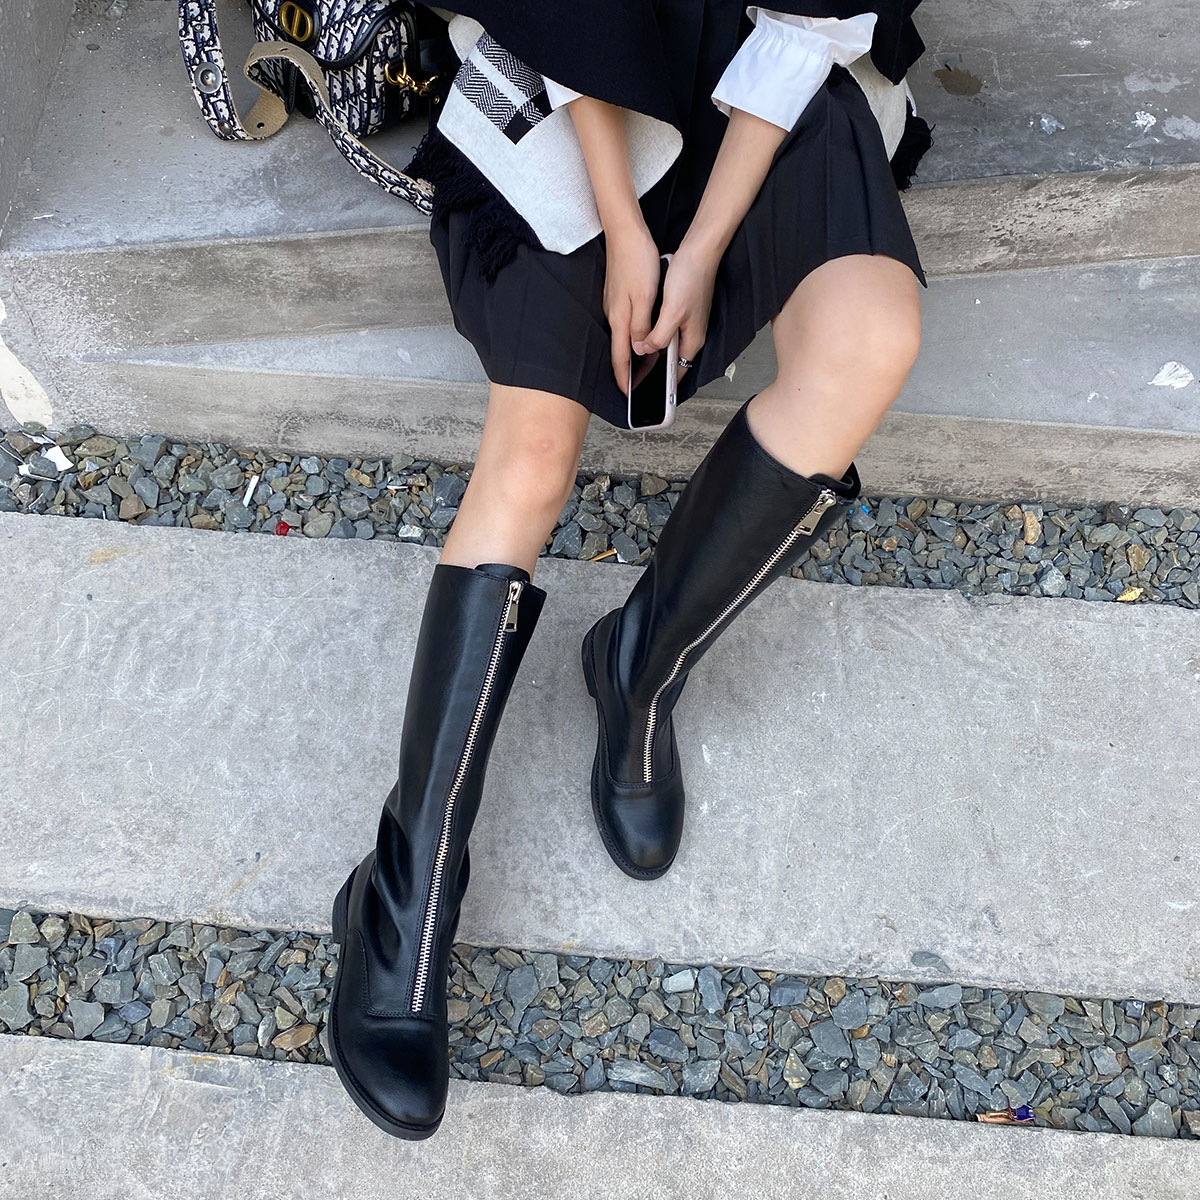 Knight boots womens black high tube below the knee bv boots thick soles 2020 new front zipper inside high thin boots